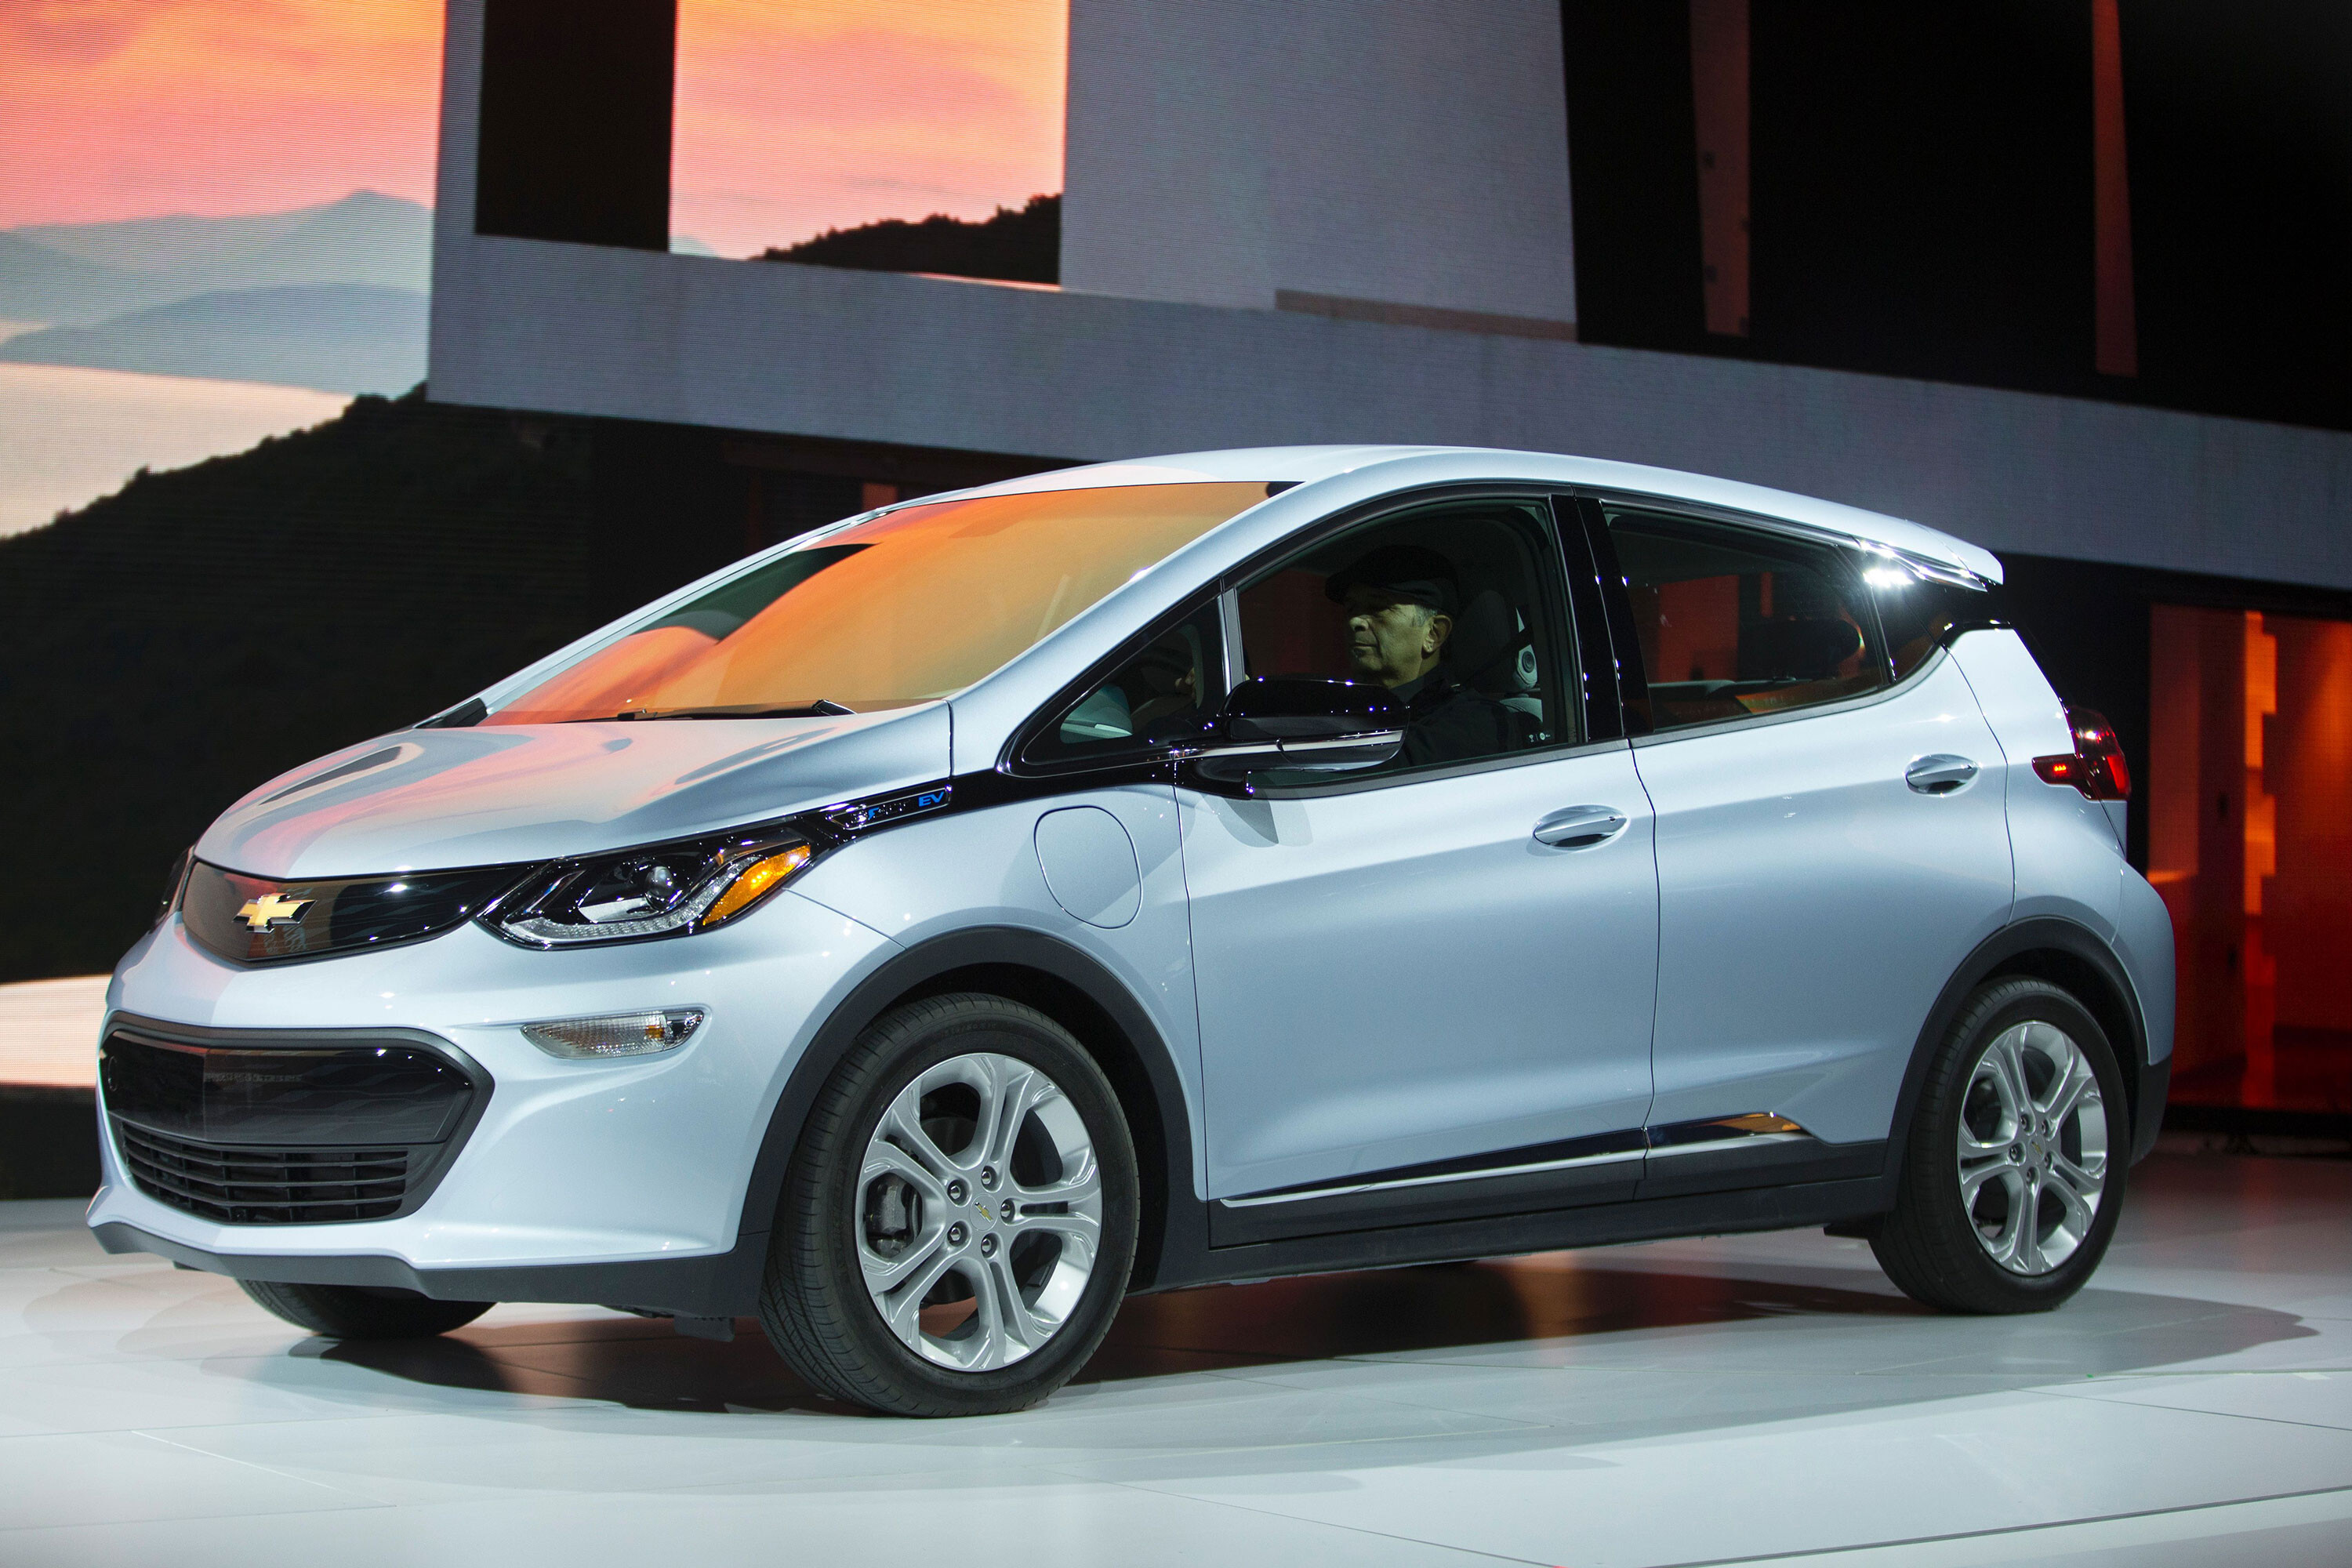 GM recalling another 70,000 Chevrolet Bolt electric cars